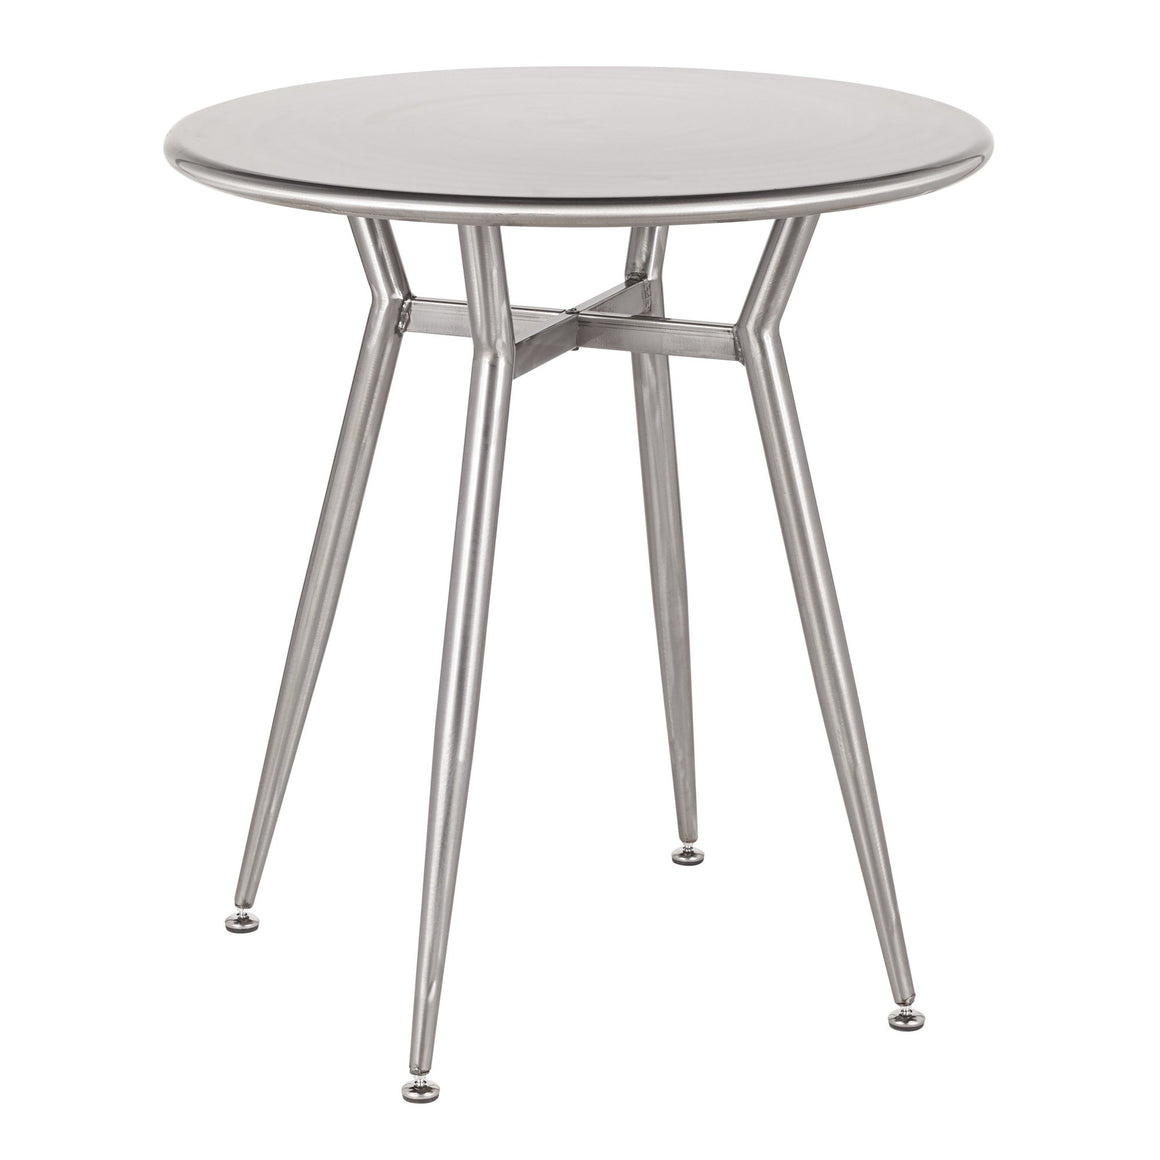 Clara Industrial Round Dinette Table in Clear Brushed Silver Metal by LumiSource